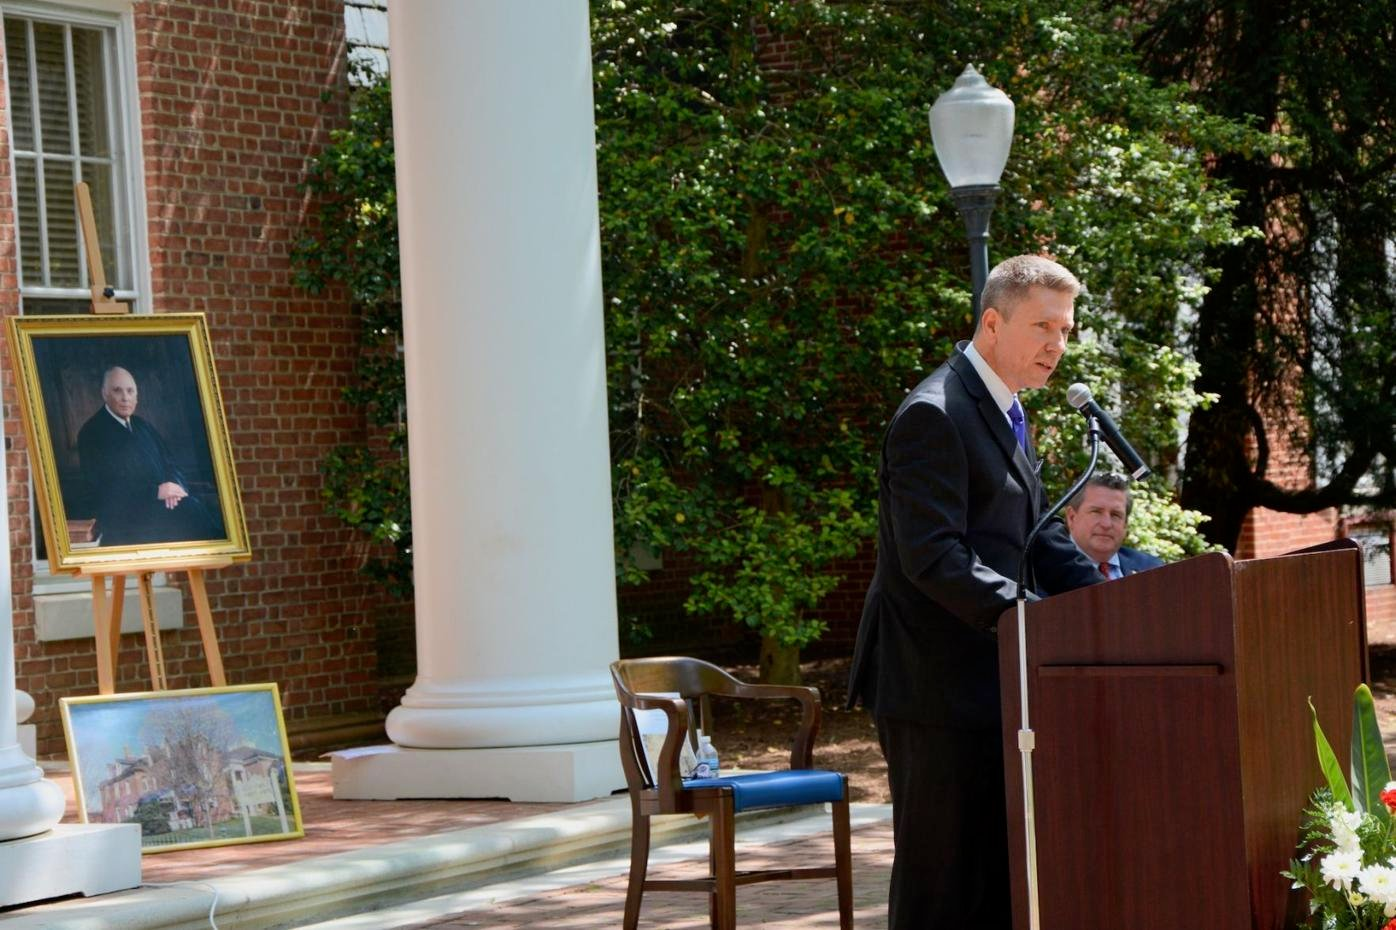 Courthouse formally dedicated to Judge George B. Rasin Jr.